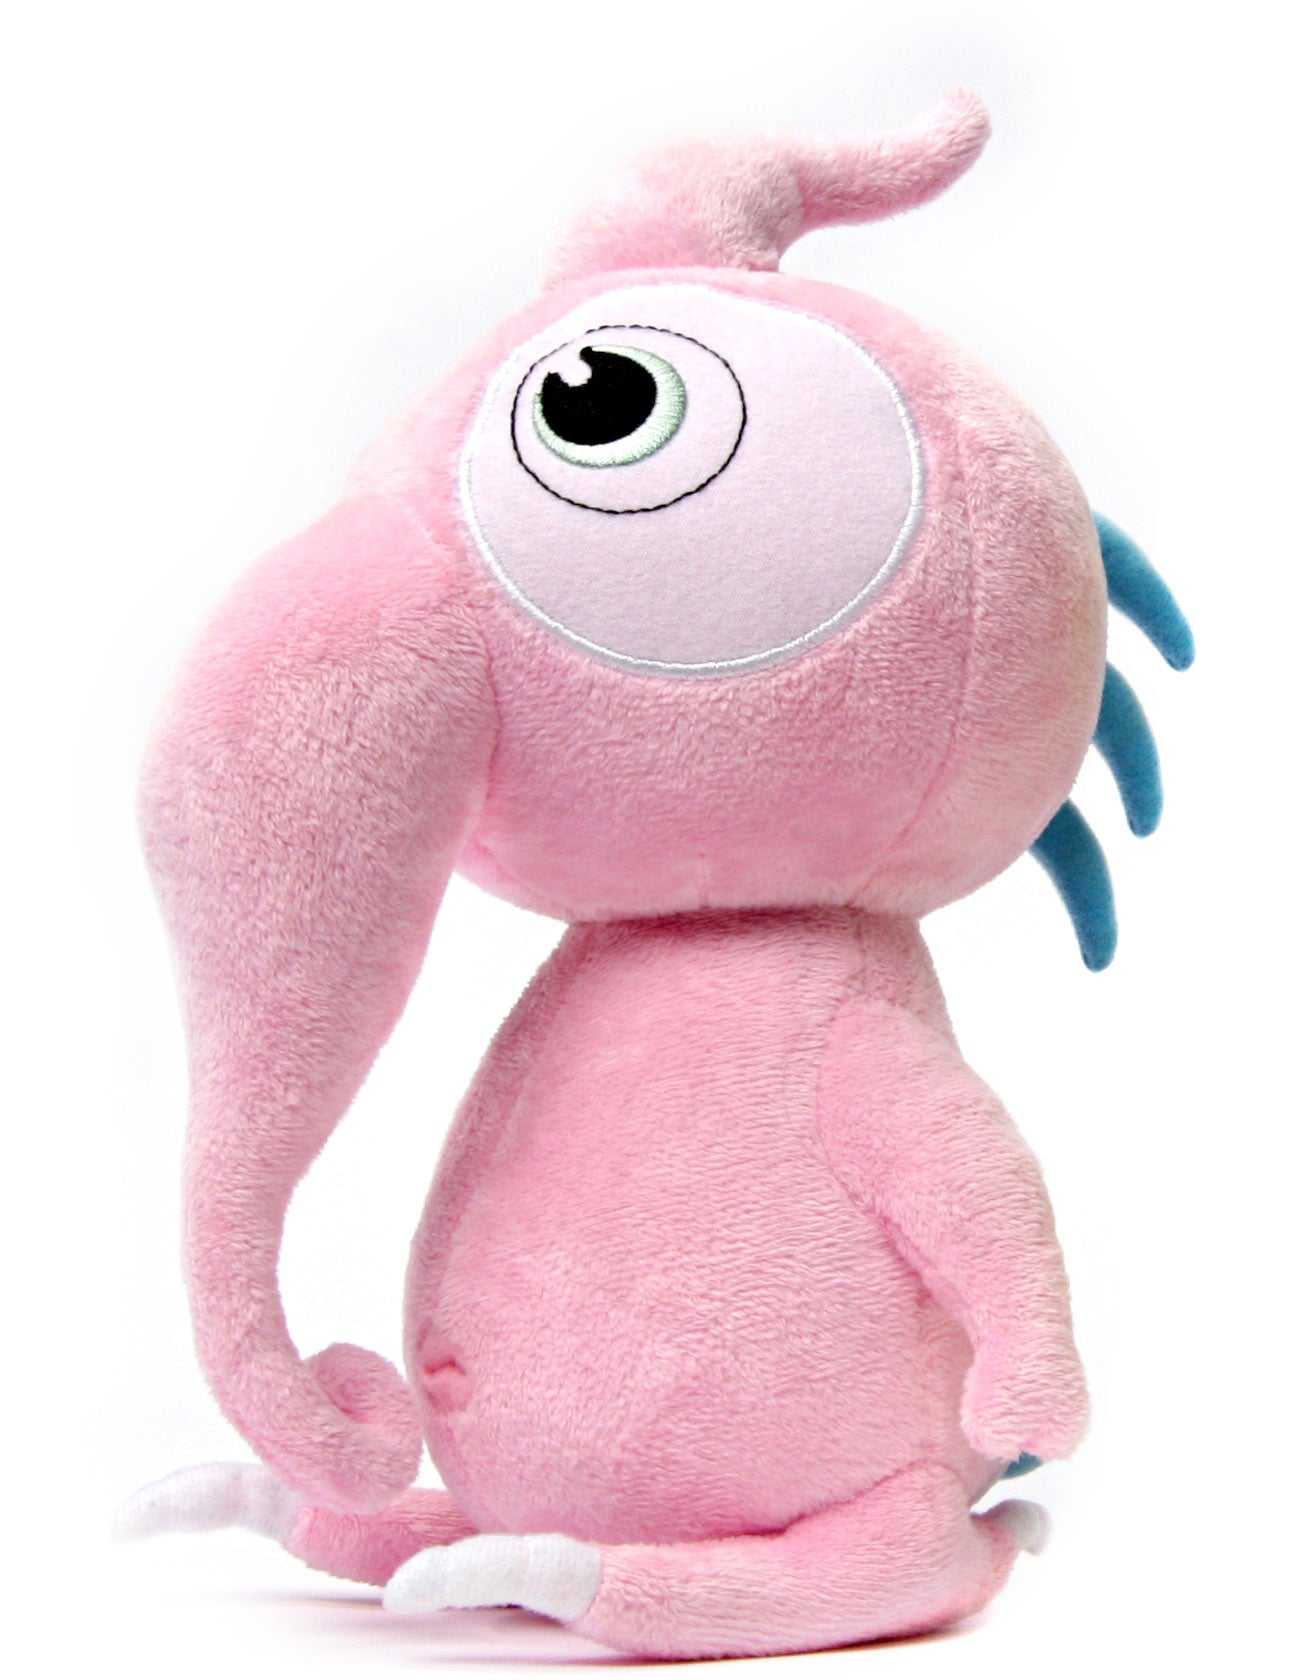 Squeek - The Monster of Innocence - WorryWoo Plush Toy - Children's Books and Toys - Spiffy